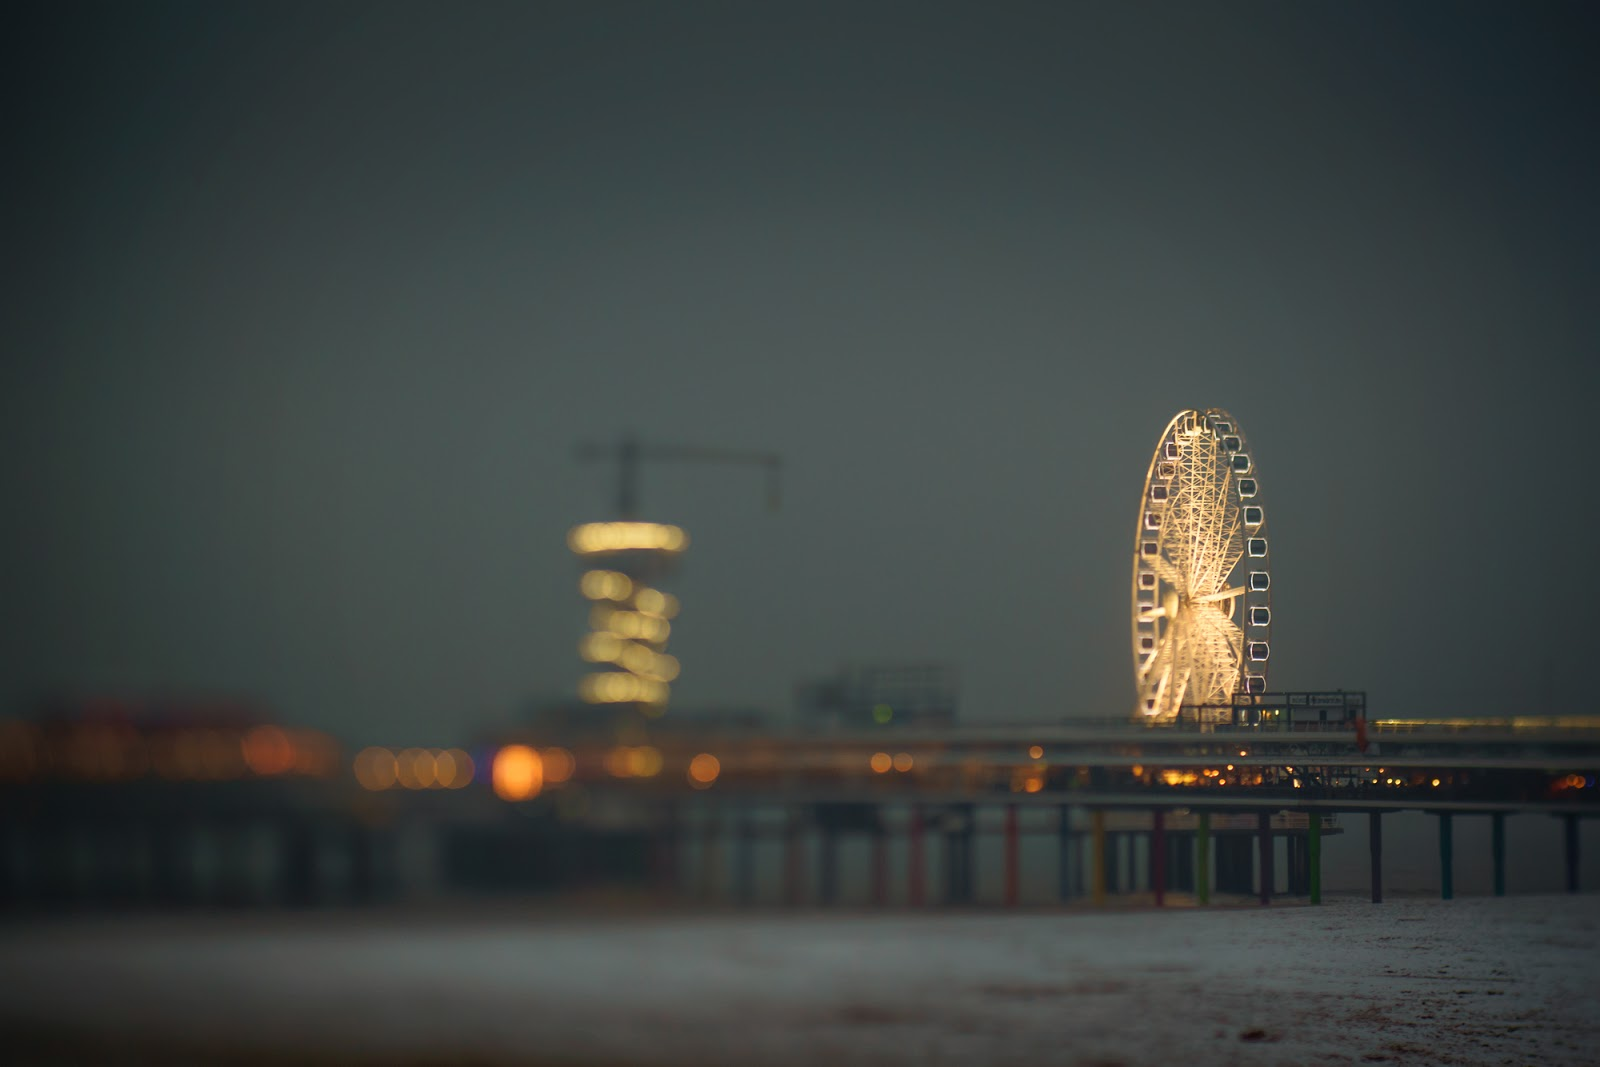 Lensbaby edge 50 image of Scheveningen beach by Willie Kers